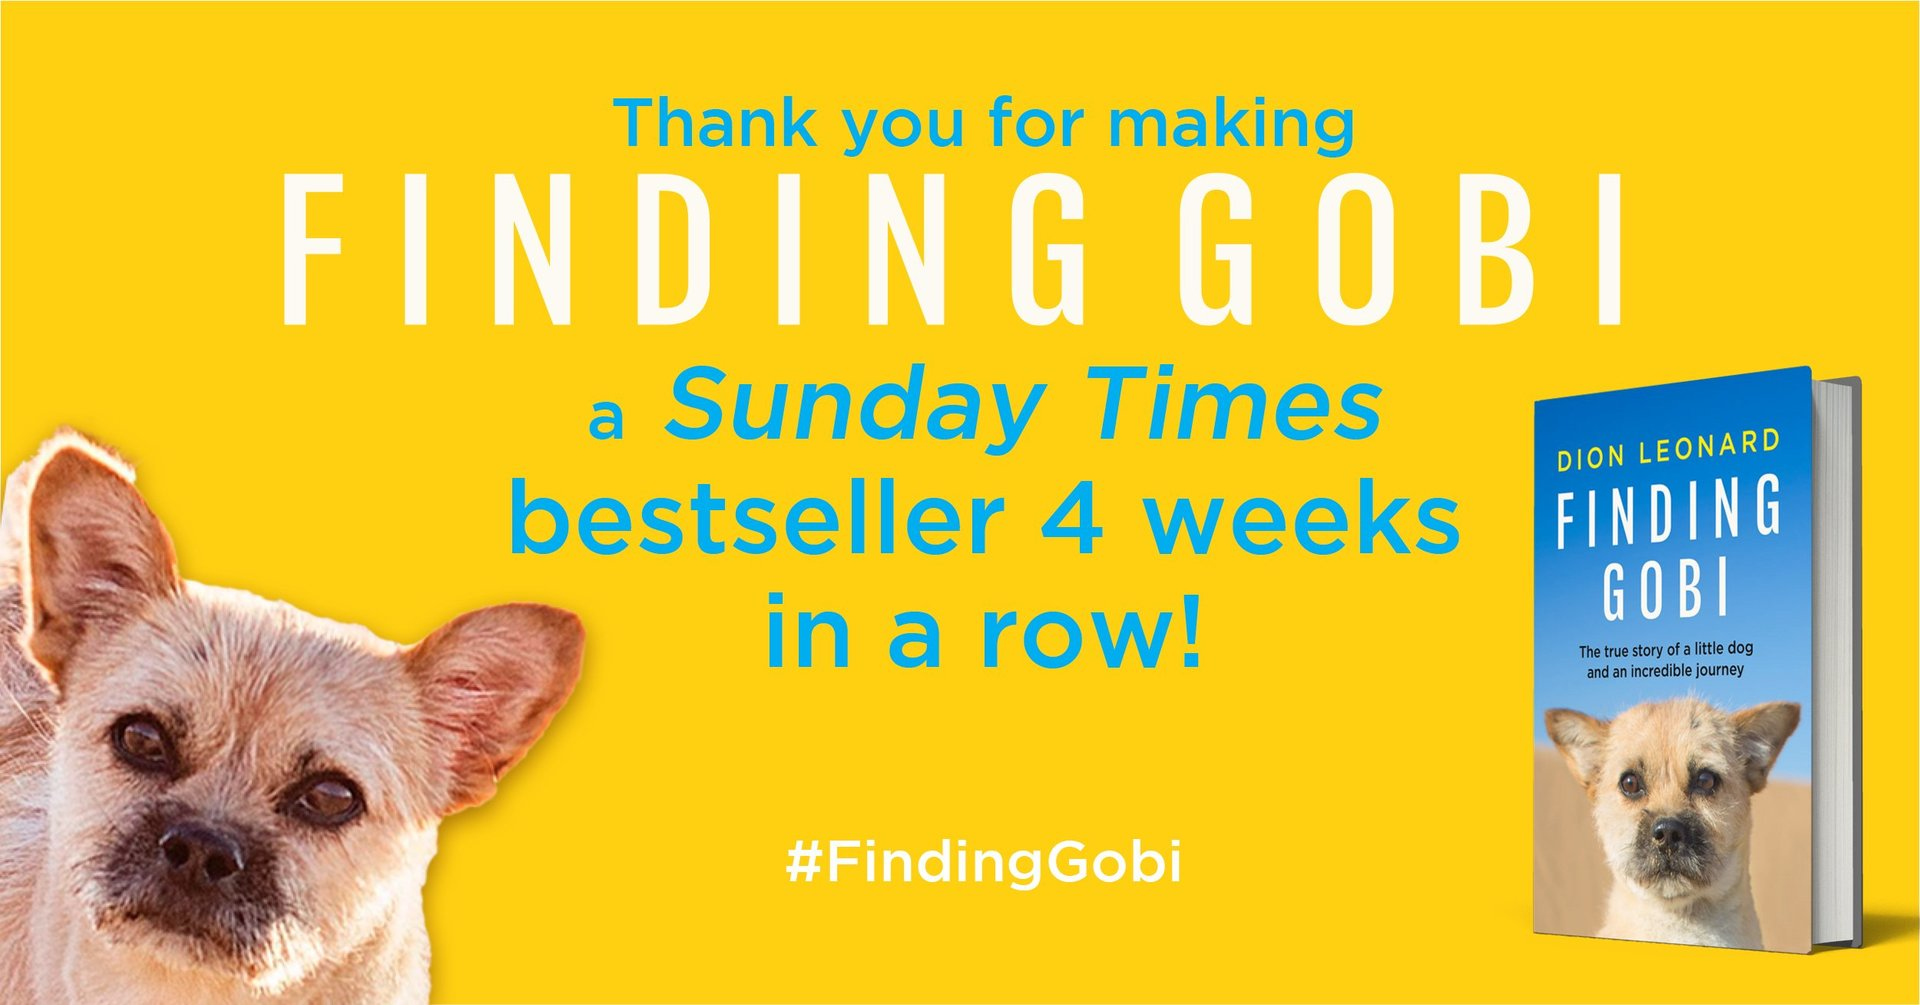 Dion Leonard, Finding Gobi, Sunday Times Bestsellers List, Gobi the Dog